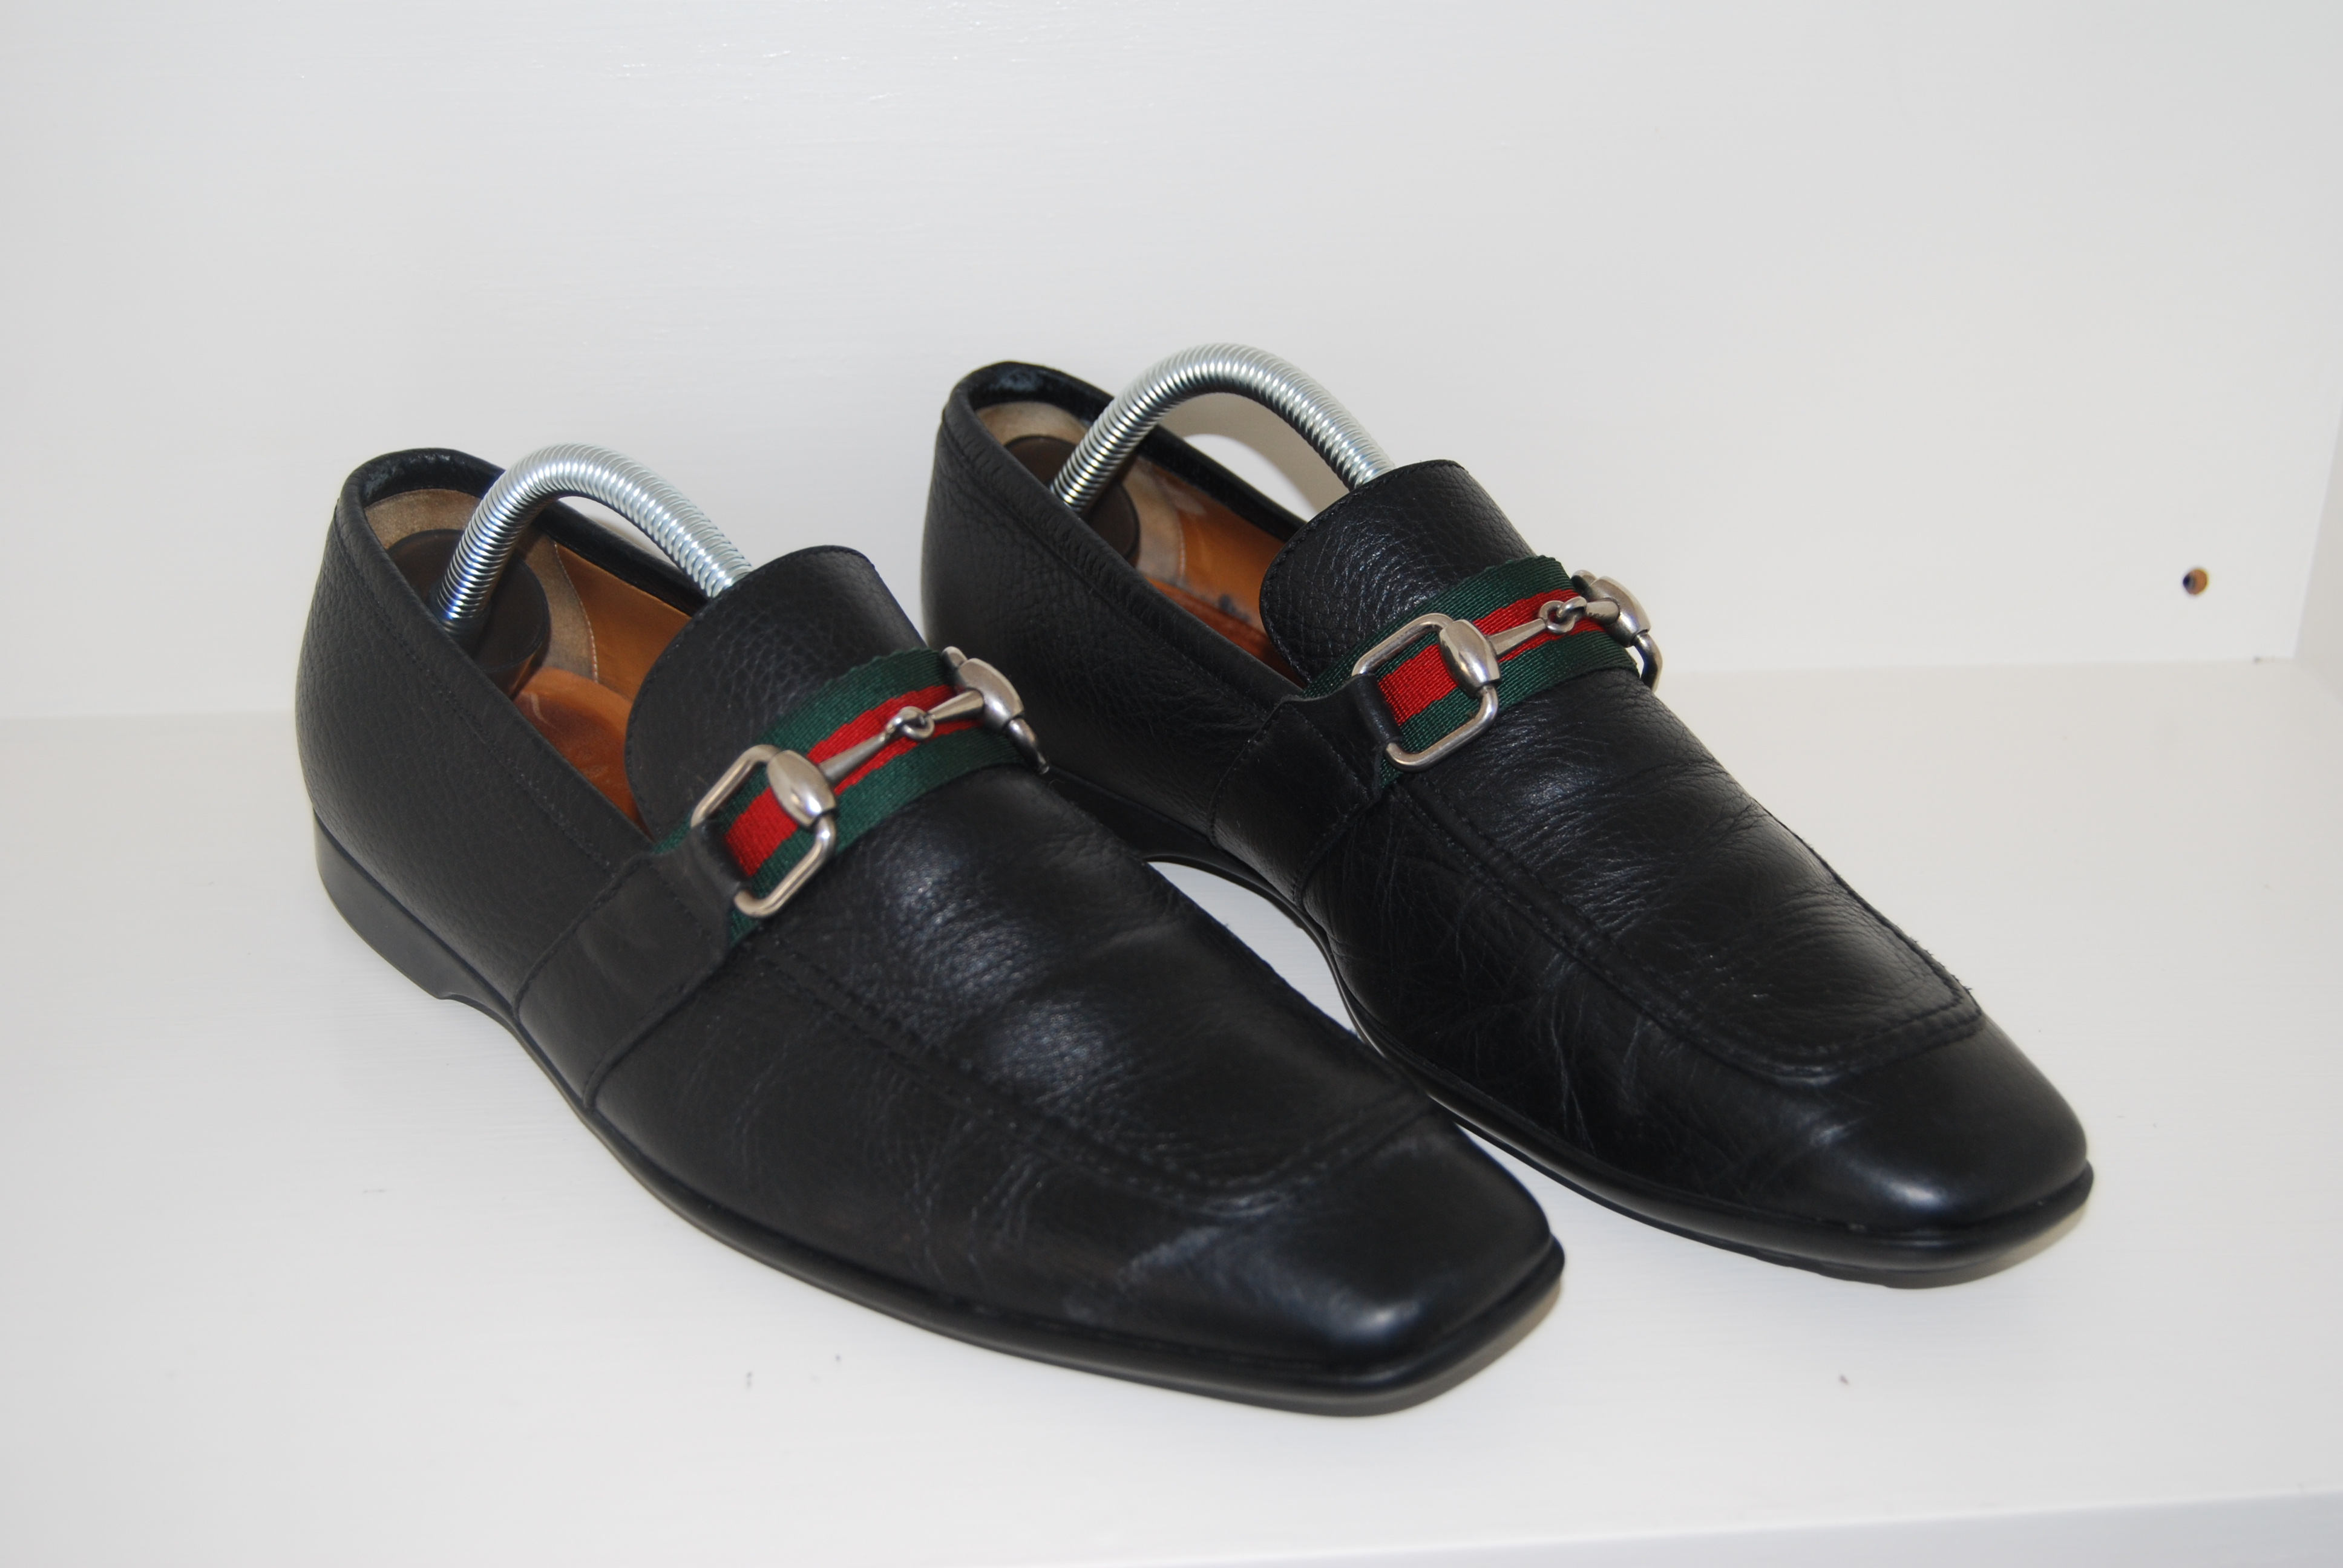 20c90aa5a Gucci Gucci Horsebit Loafer - Want Gone Asap, Send Me Offers! | Grailed